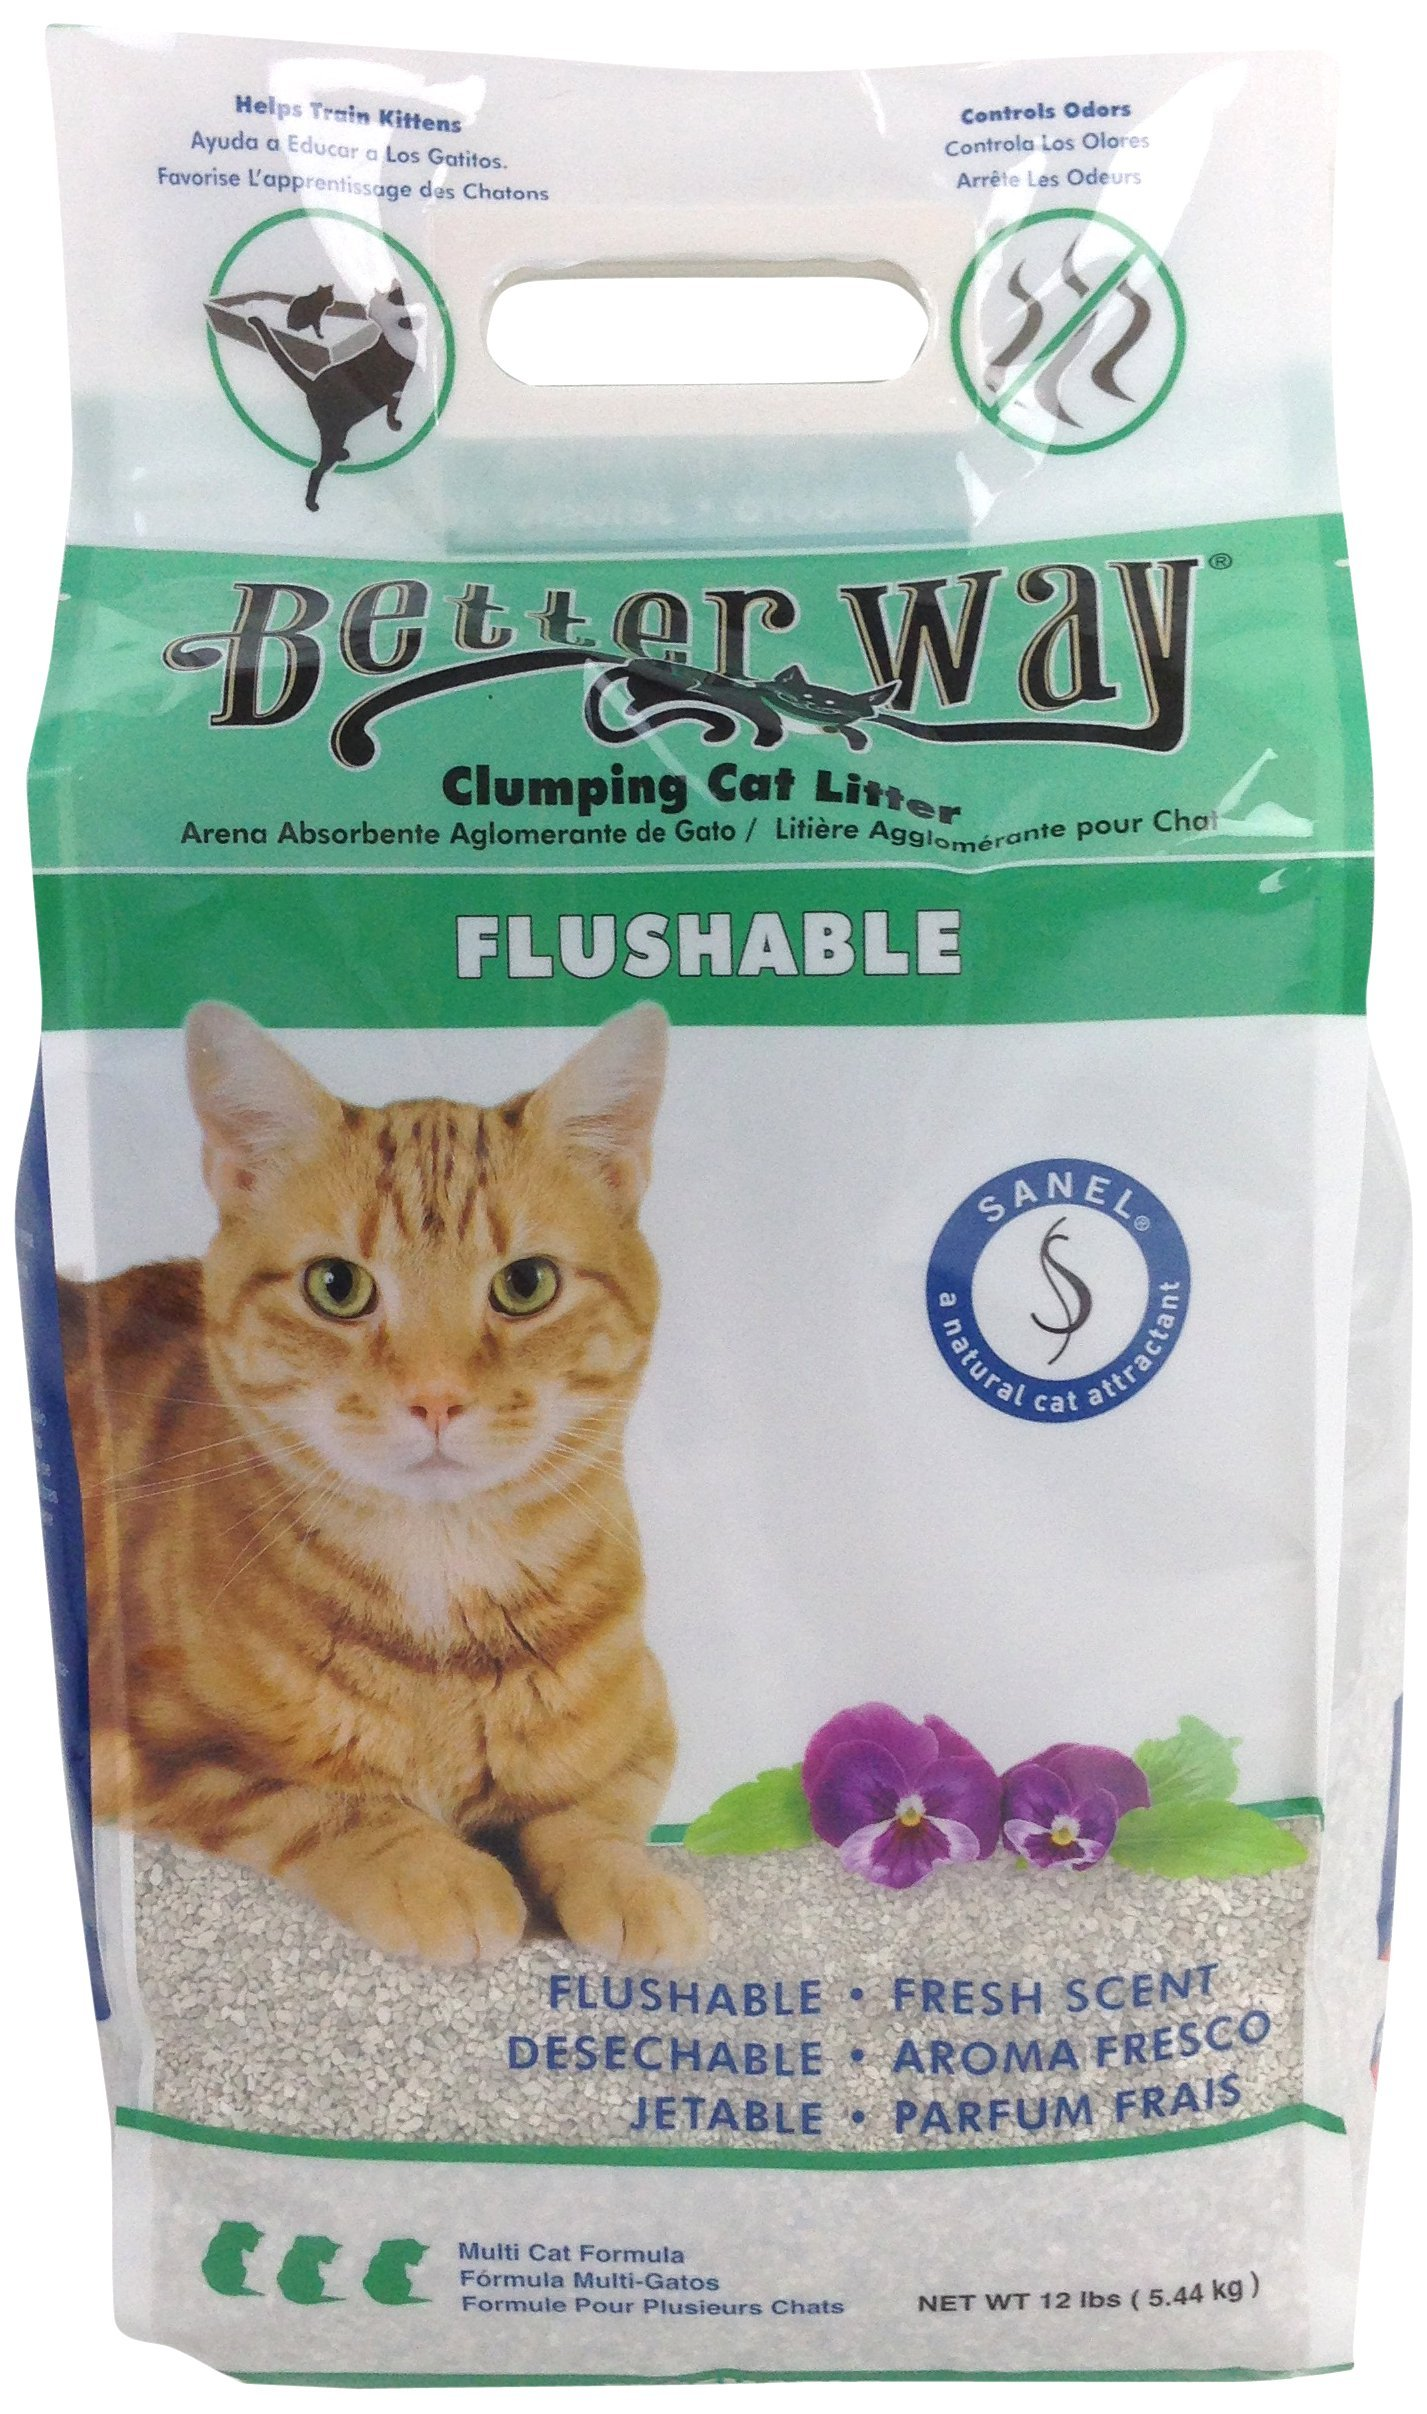 Better Way Flushable Cat Litter 12 Pound bag 3 pack of 12 lb bags